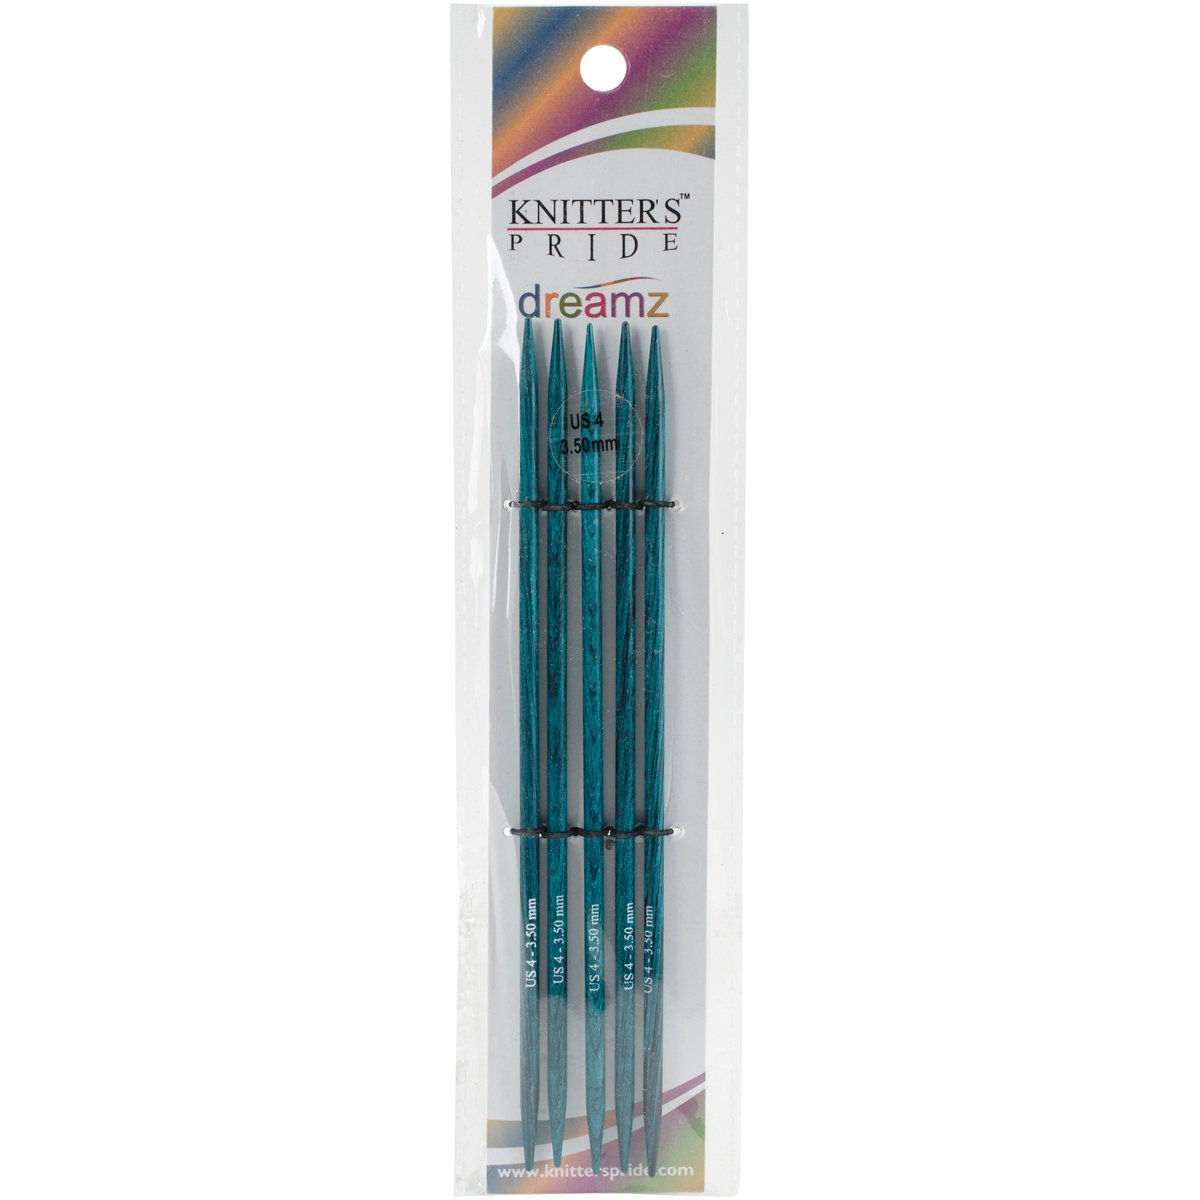 Knitters Pride 4//3.5mm Dreamz Double Pointed Needles 6